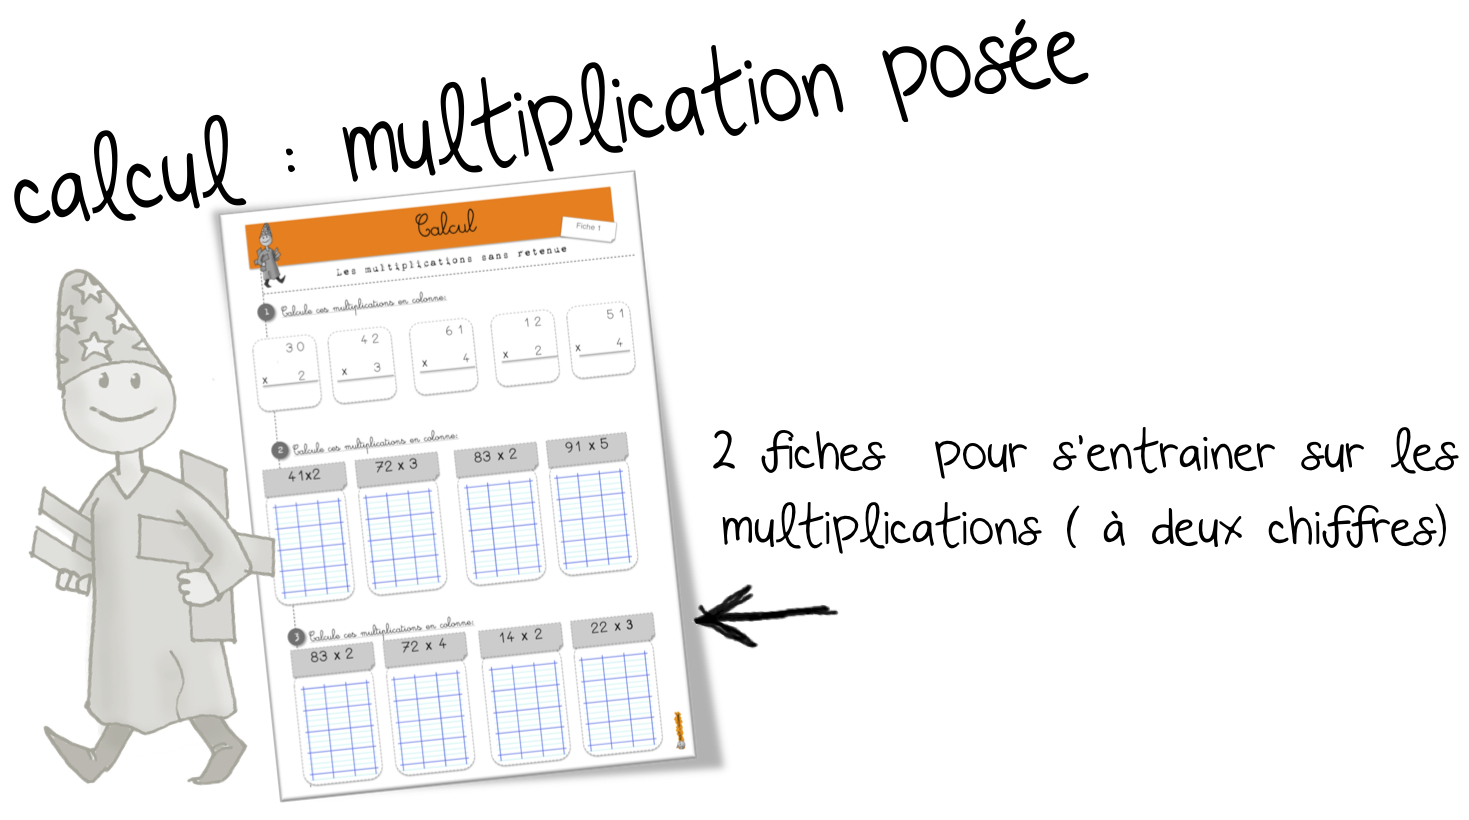 La multiplication pos e exercices bout de gomme - Table de multiplication exercice ce1 ...